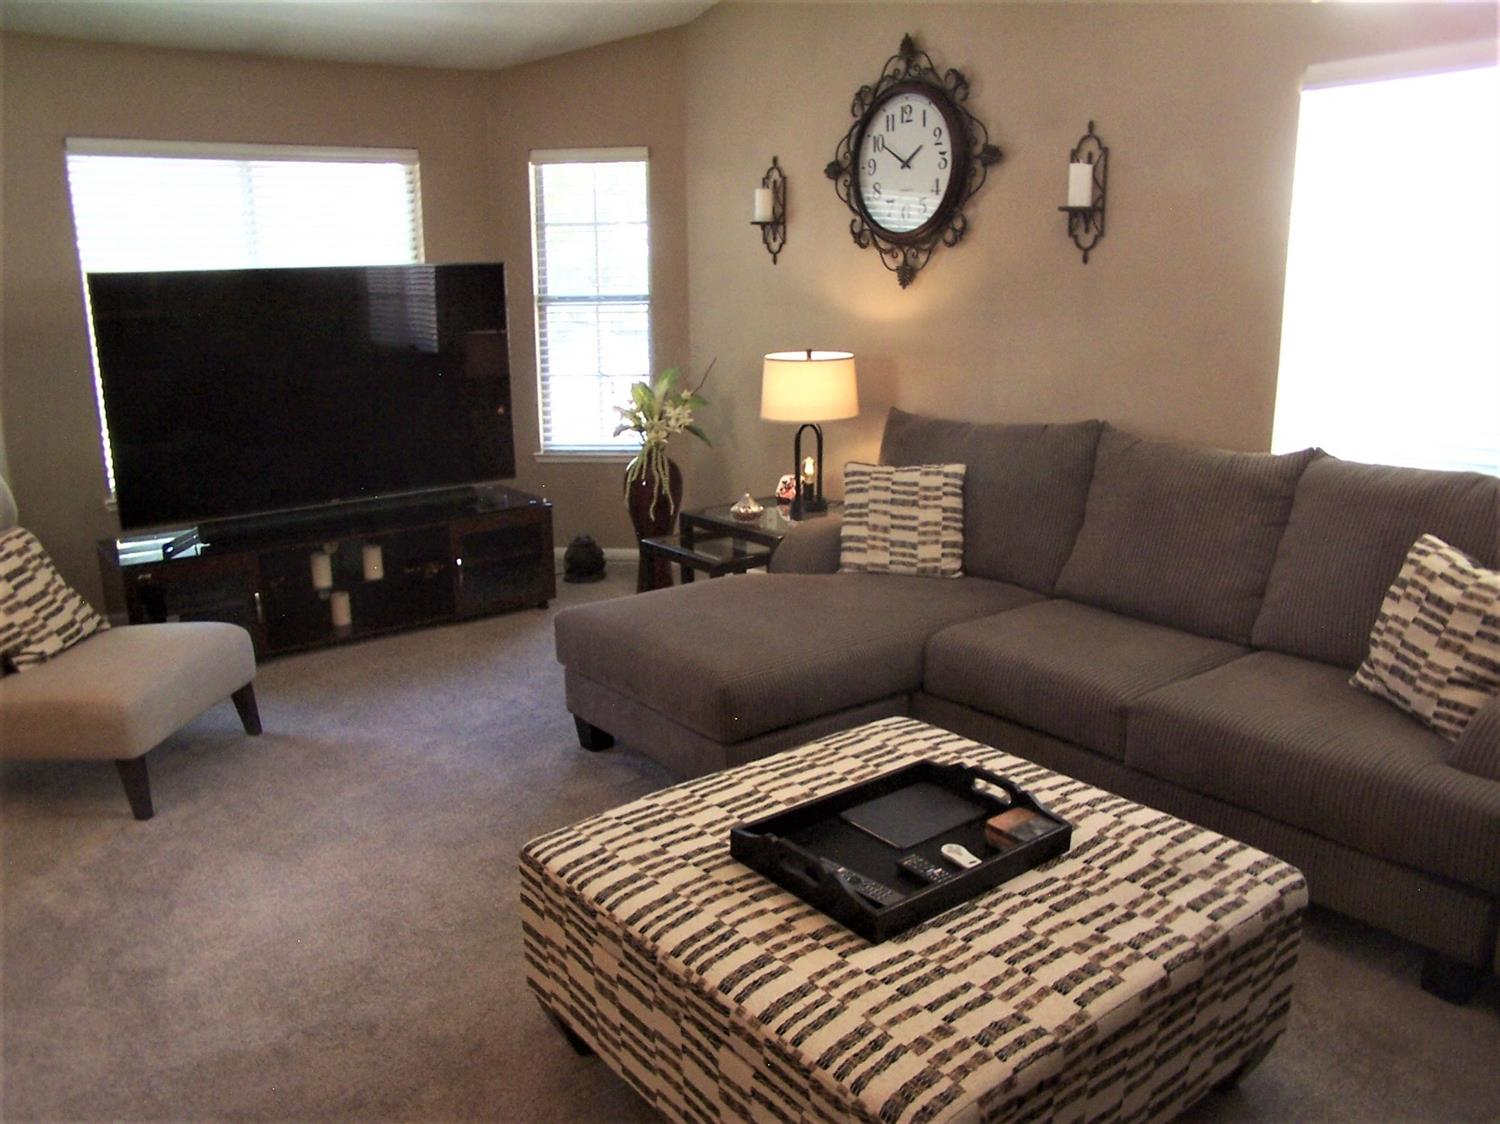 Photo 5 for Listing #221114141